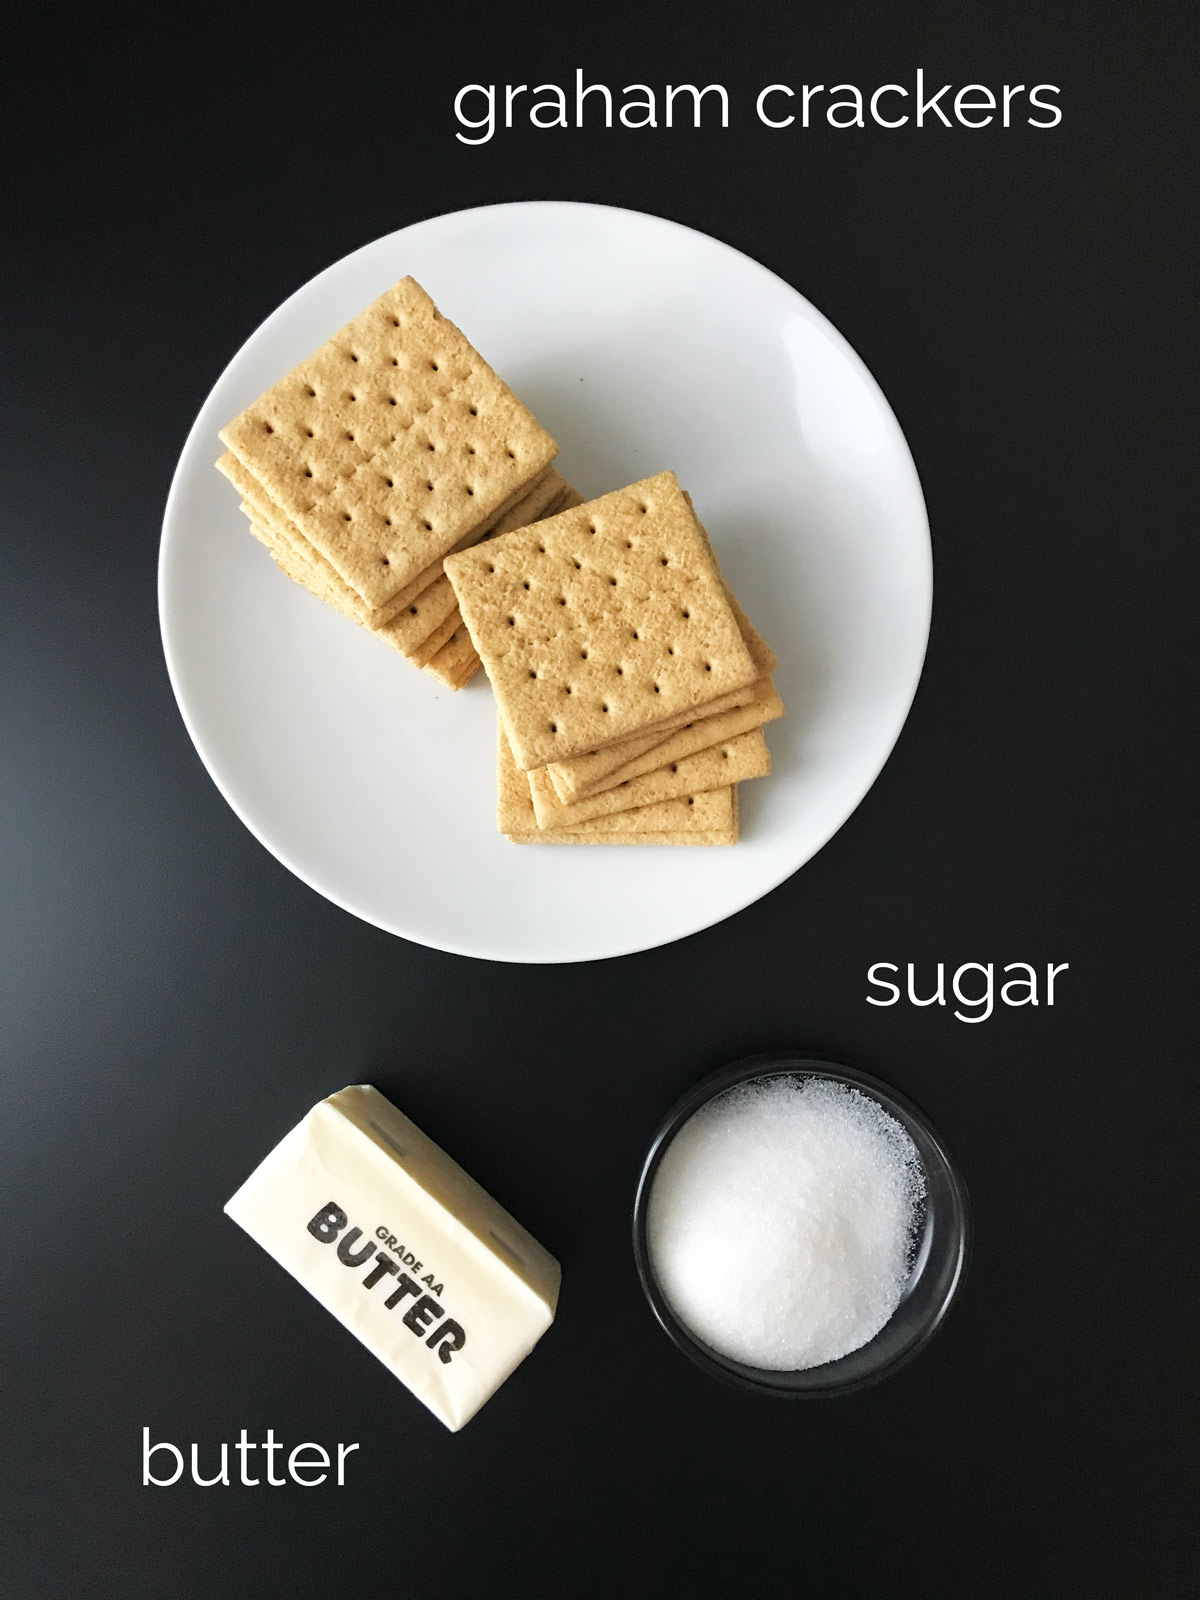 graham crackers, sugar, and butter laid out on a black table top.